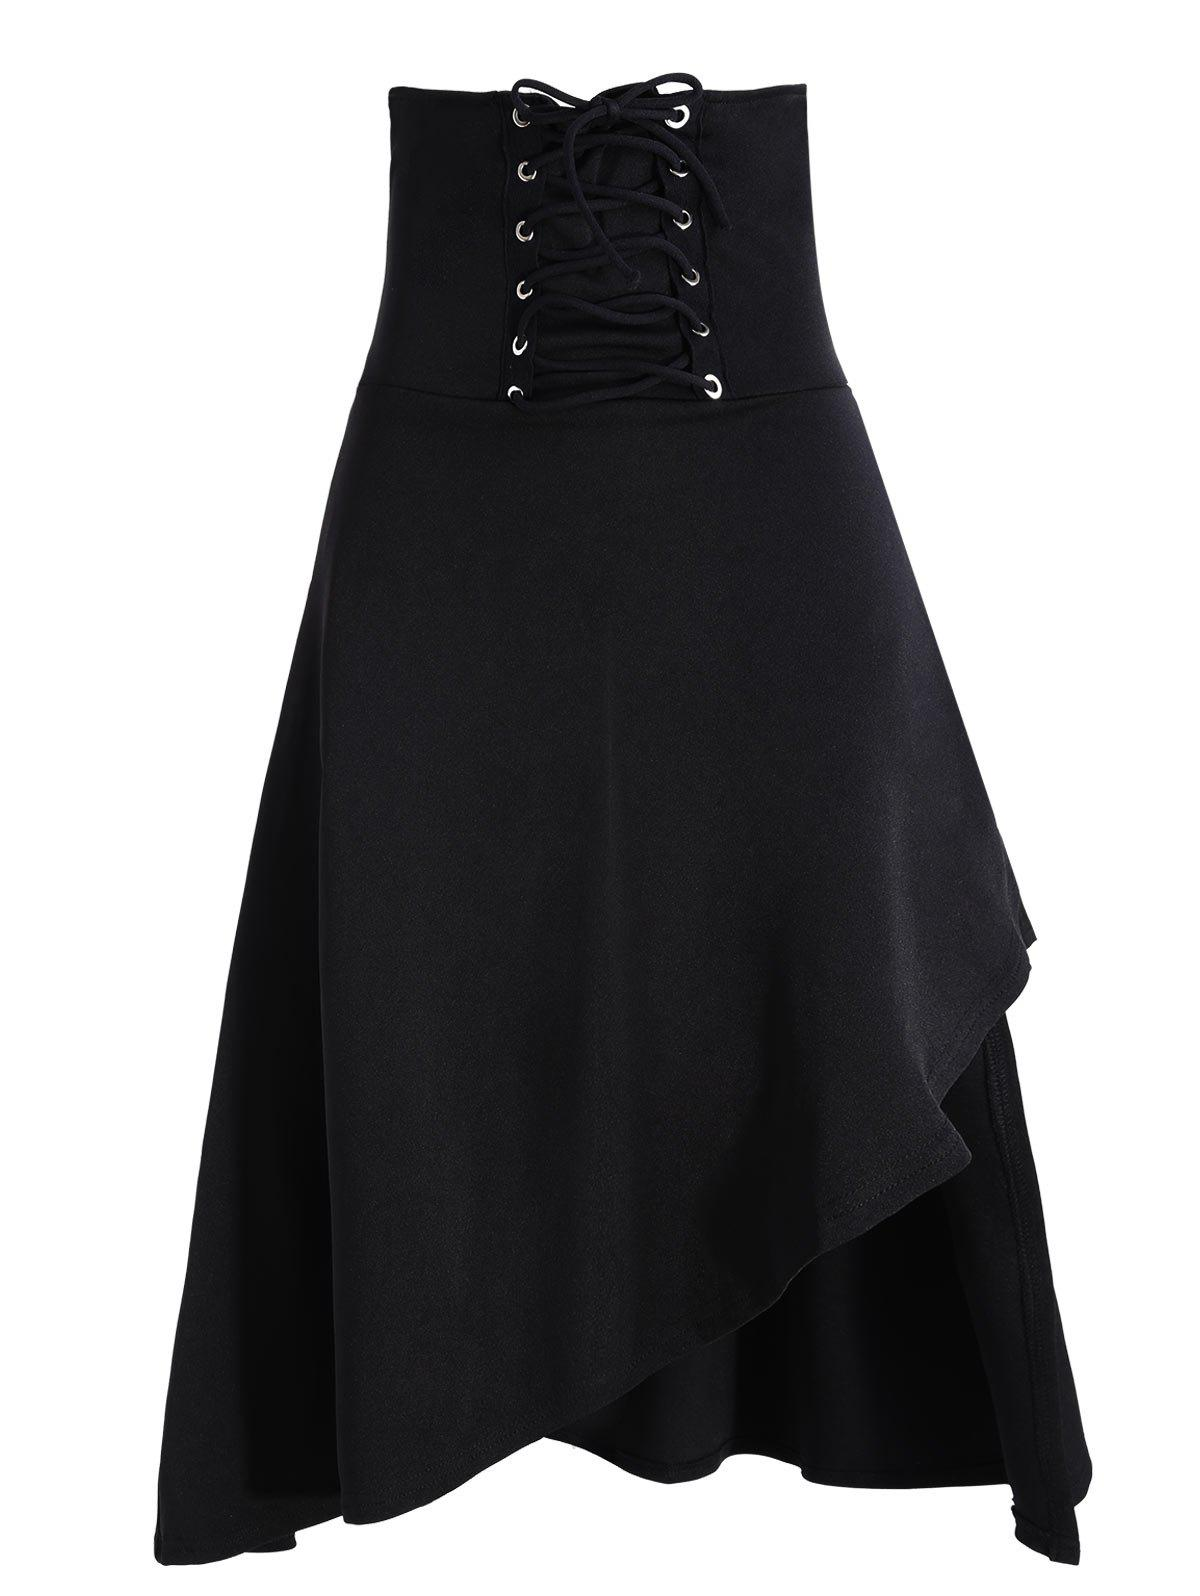 Asymmetric Lace Up Gothic Long SkirtWOMEN<br><br>Size: 2XL; Color: BLACK; Material: Polyester,Spandex; Length: Mid-Calf; Silhouette: A-Line; Pattern Type: Solid; Embellishment: Criss-Cross; Season: Fall,Spring; Weight: 0.4500kg; Package Contents: 1 x Skirt;